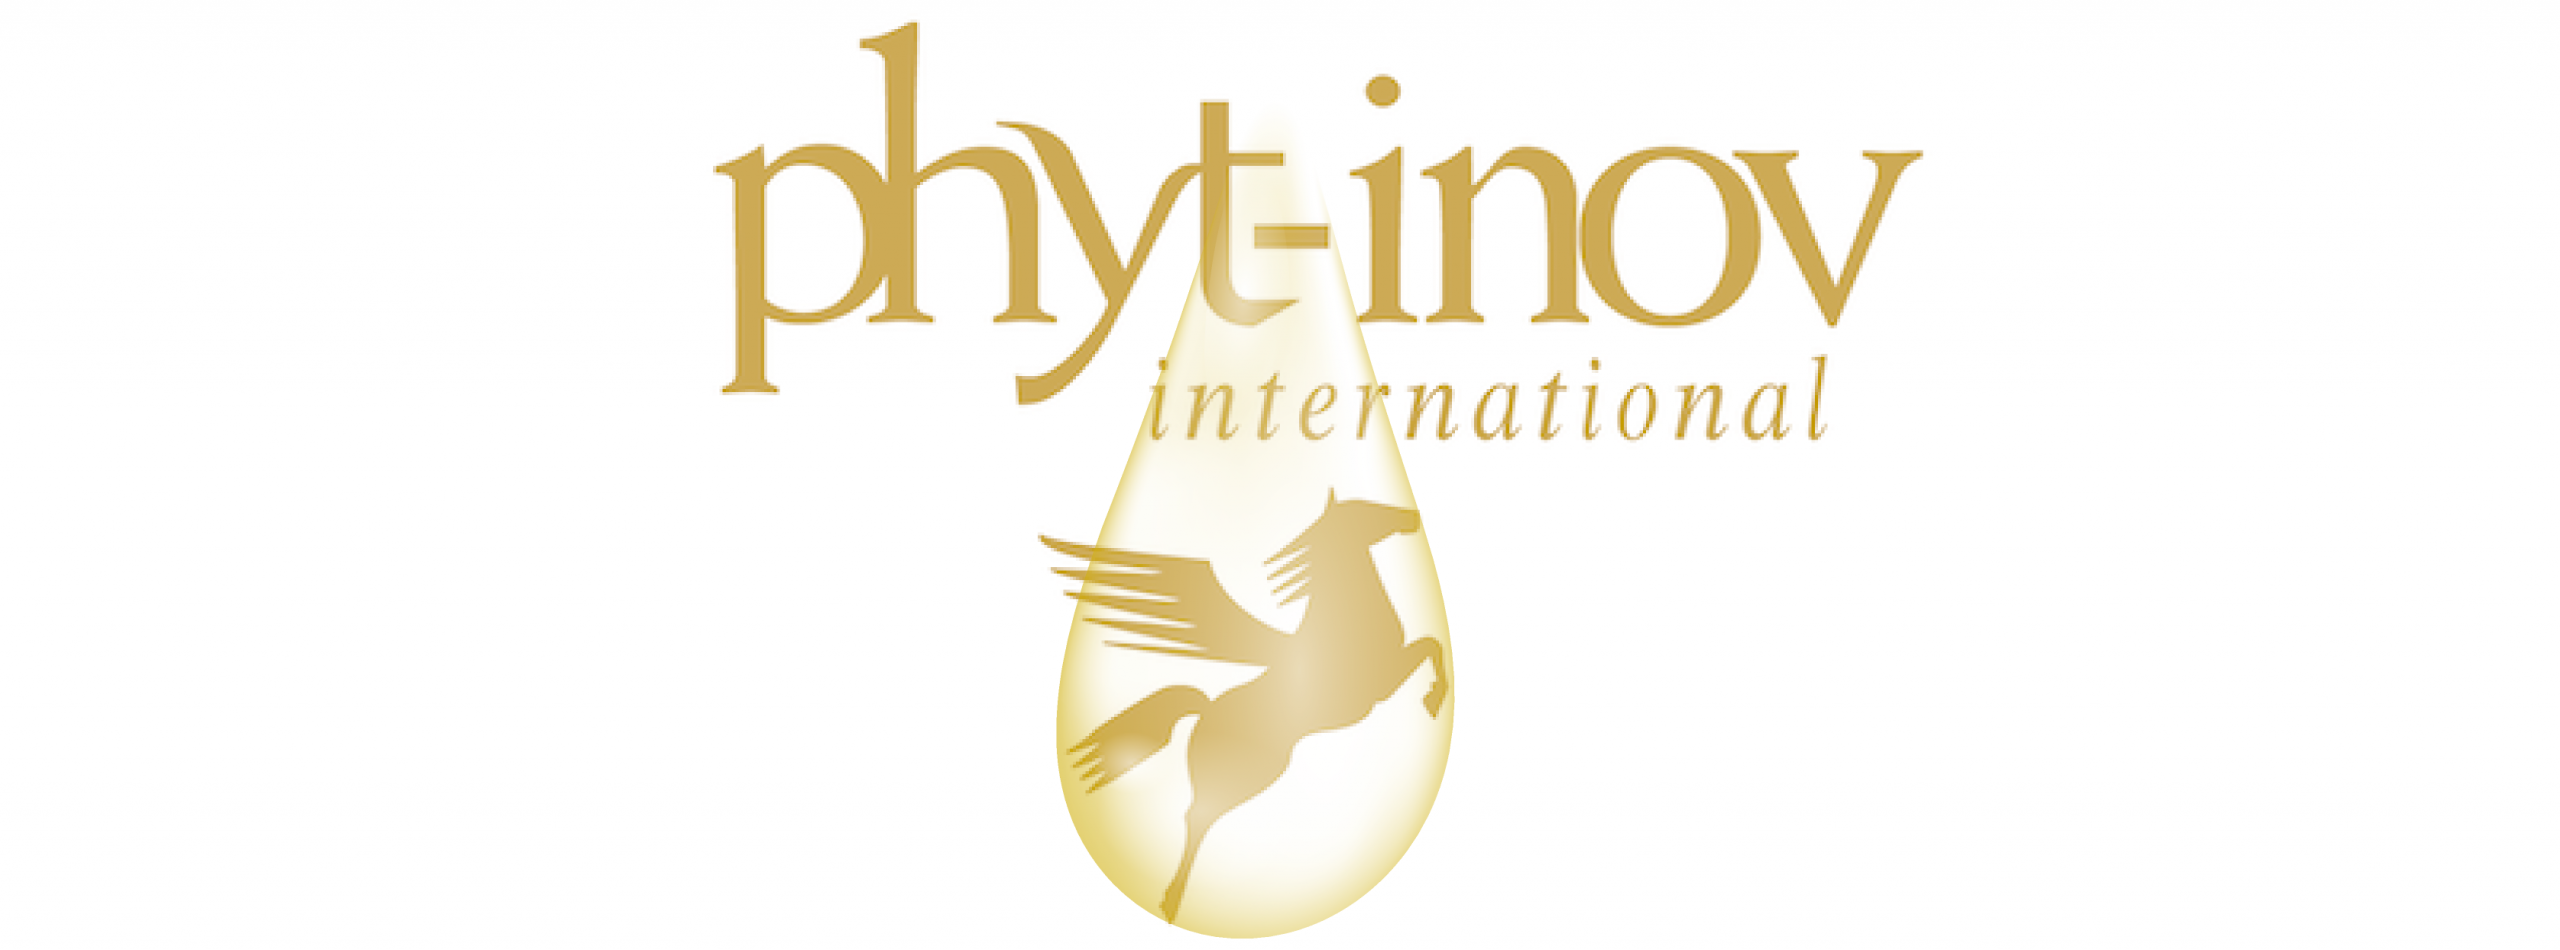 Phyt Inov International